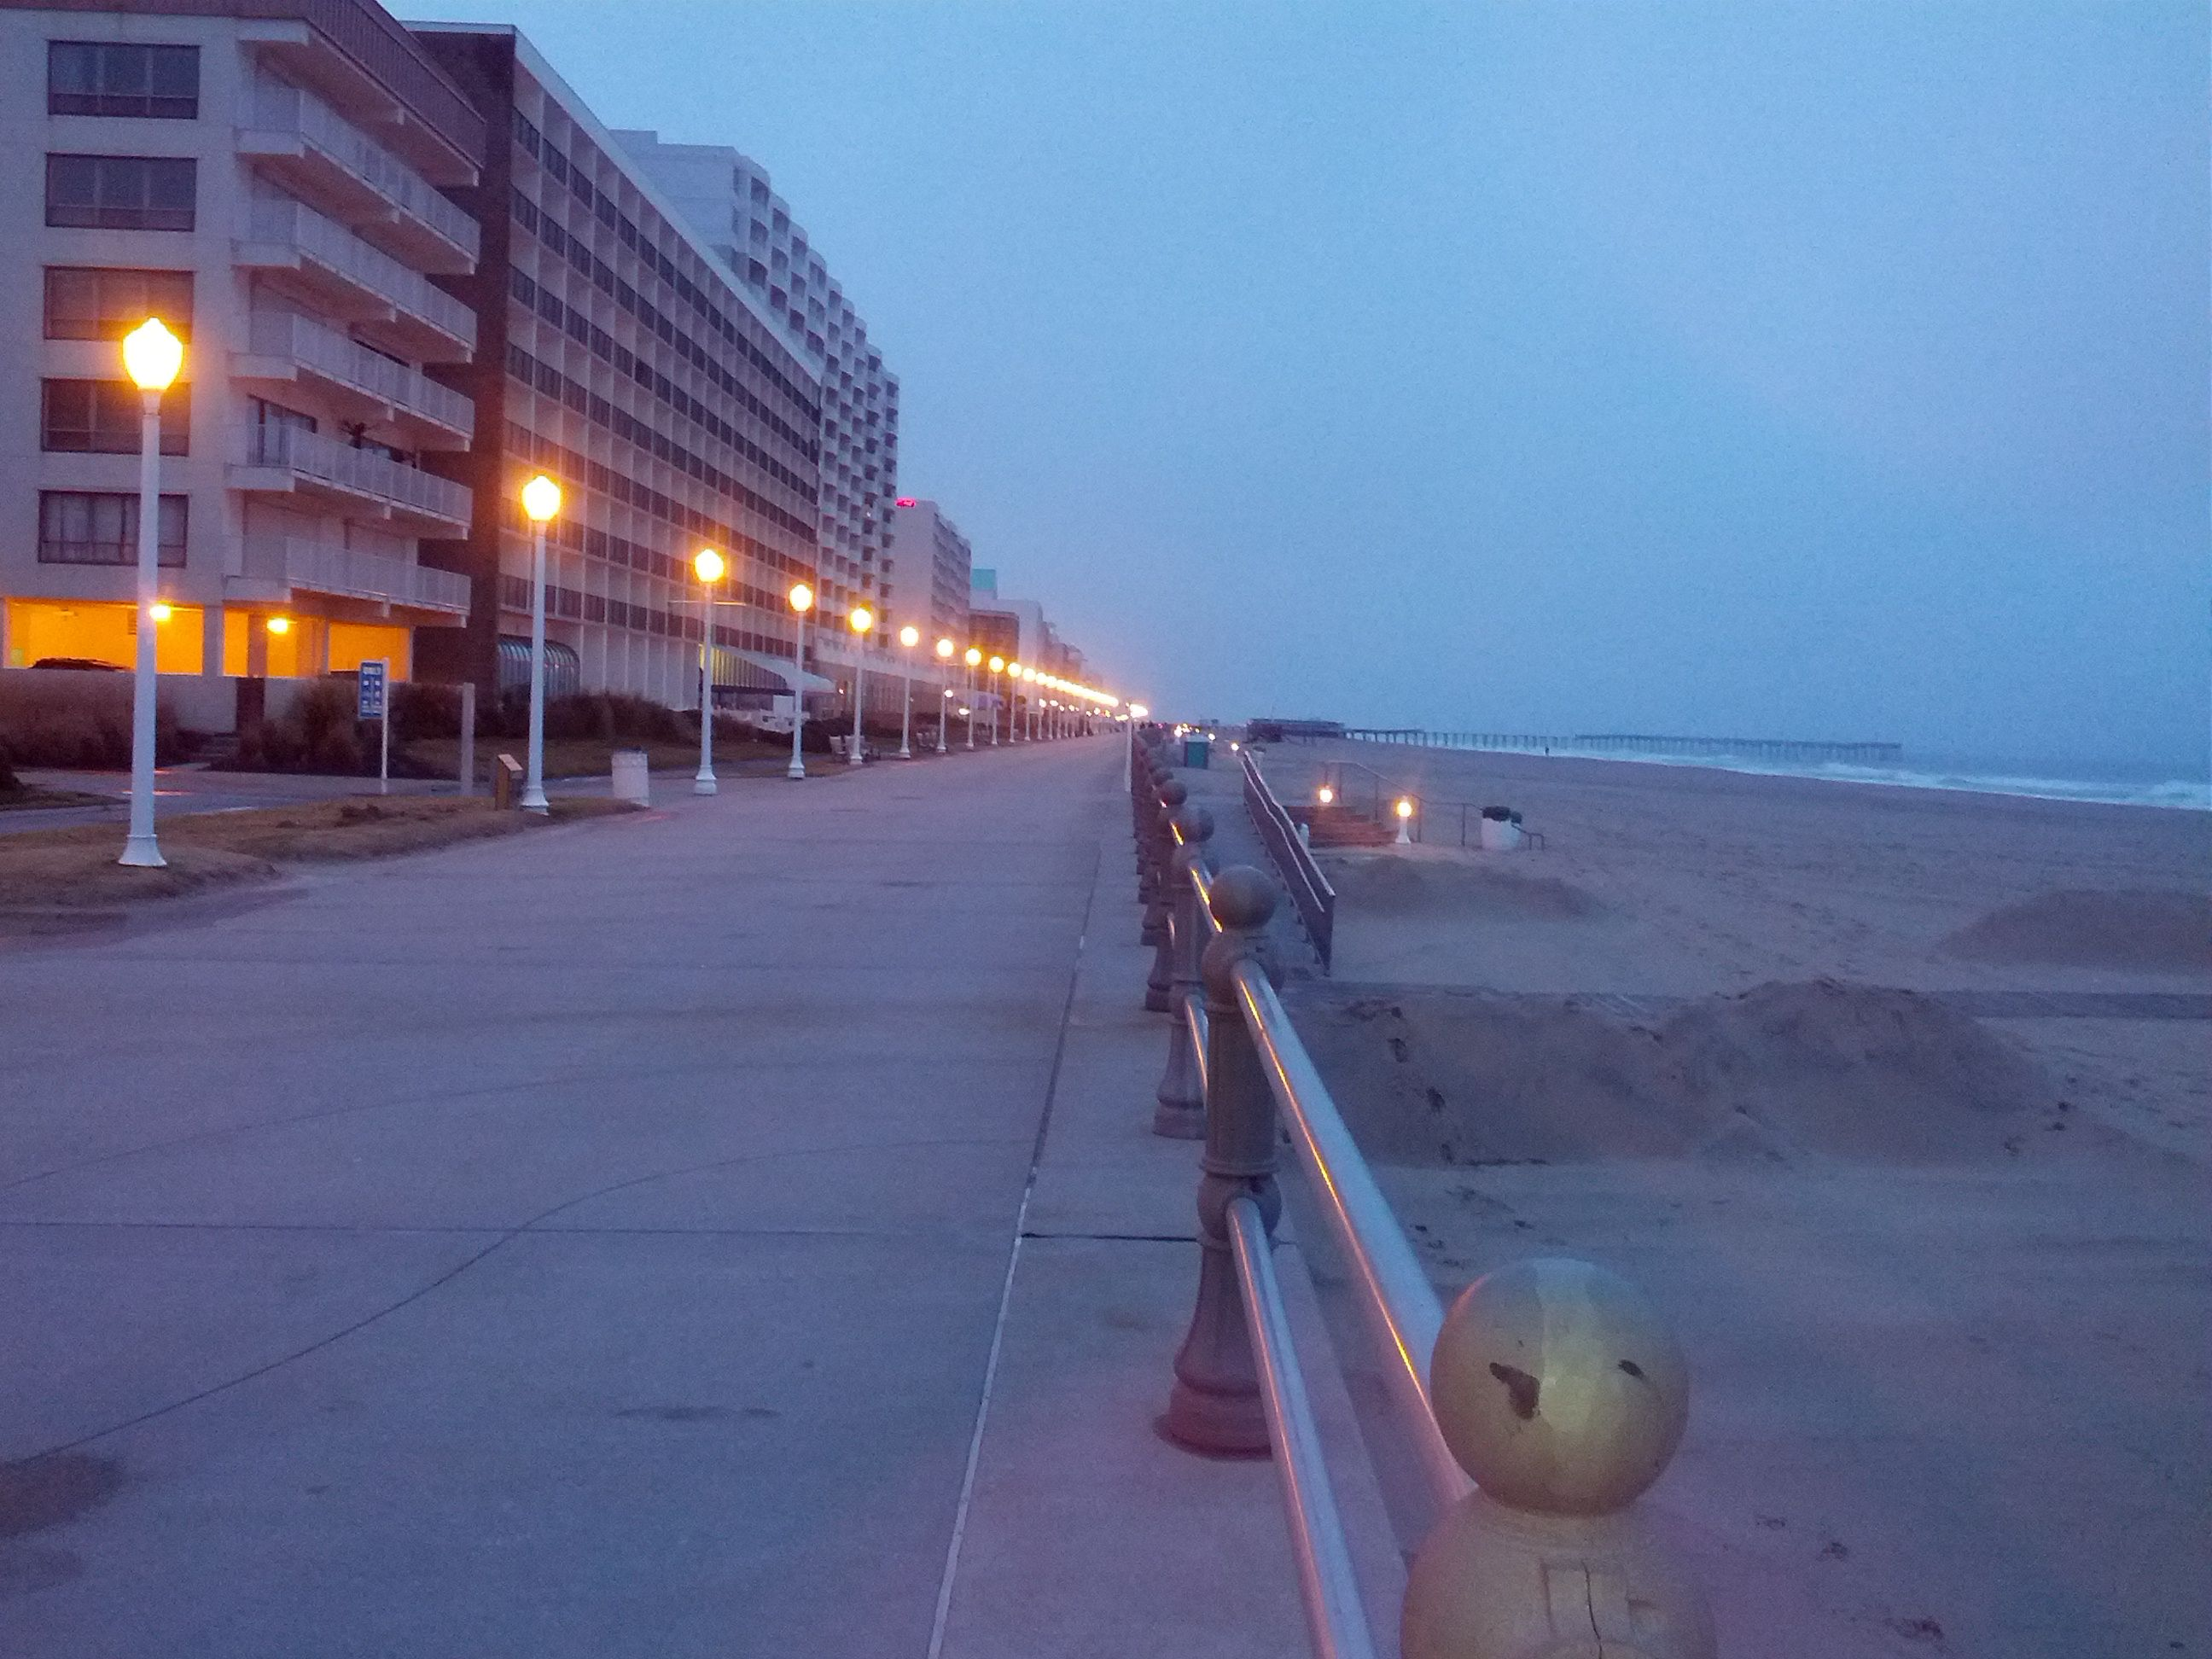 Virginia Beach We Were There In October The Weather Was Still Nice And Boardwalk Deserted Perfect